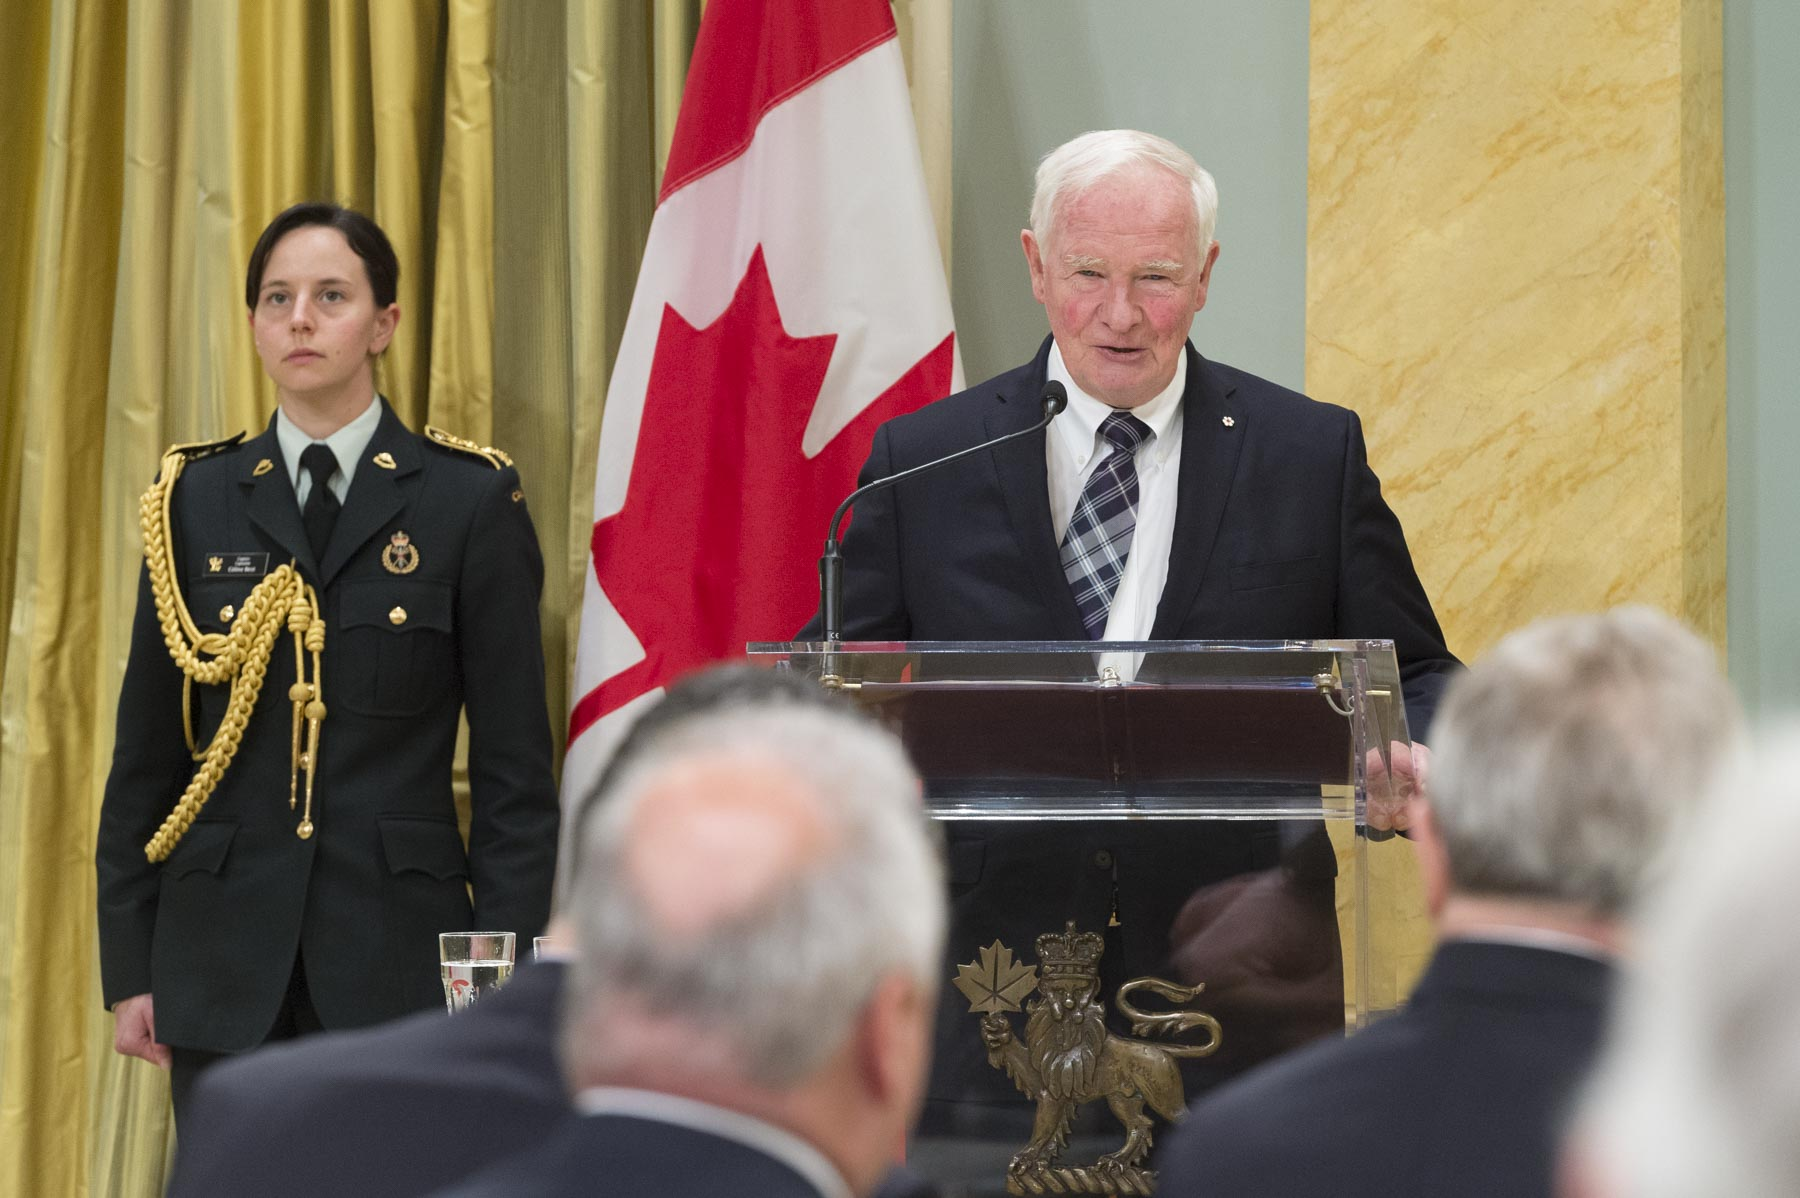 """With this medal, we honour and celebrate your lifelong pursuit of a more fair and just world, a world in which all people have the fundamental rights to life, dignity and protection from harm,"" said the Governor General."